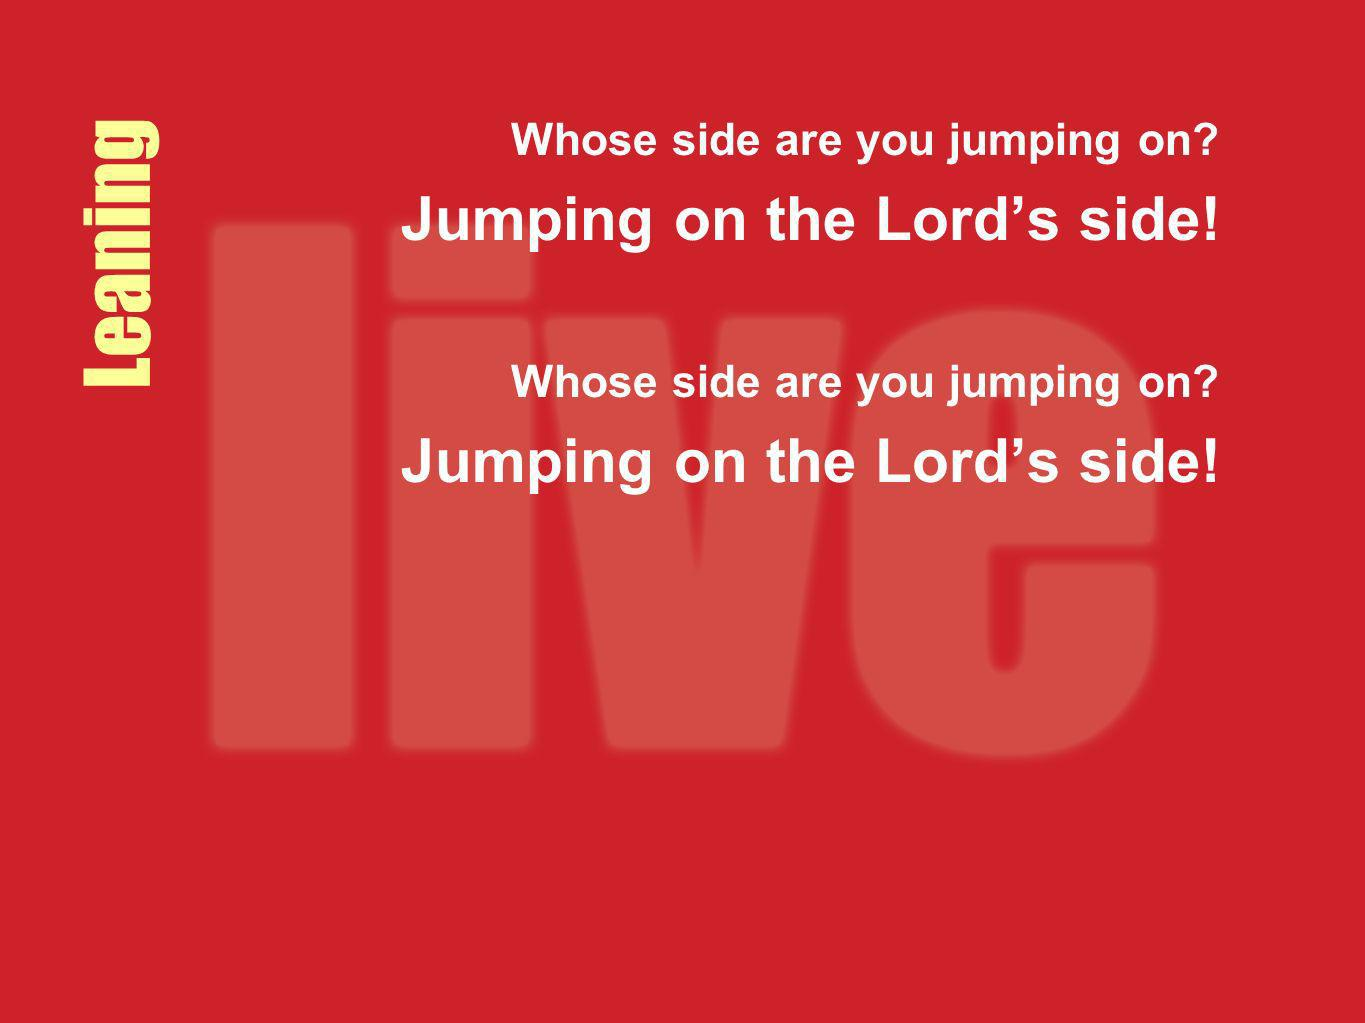 Leaning Whose side are you jumping on? Jumping on the Lords side! Whose side are you jumping on? Jumping on the Lords side!